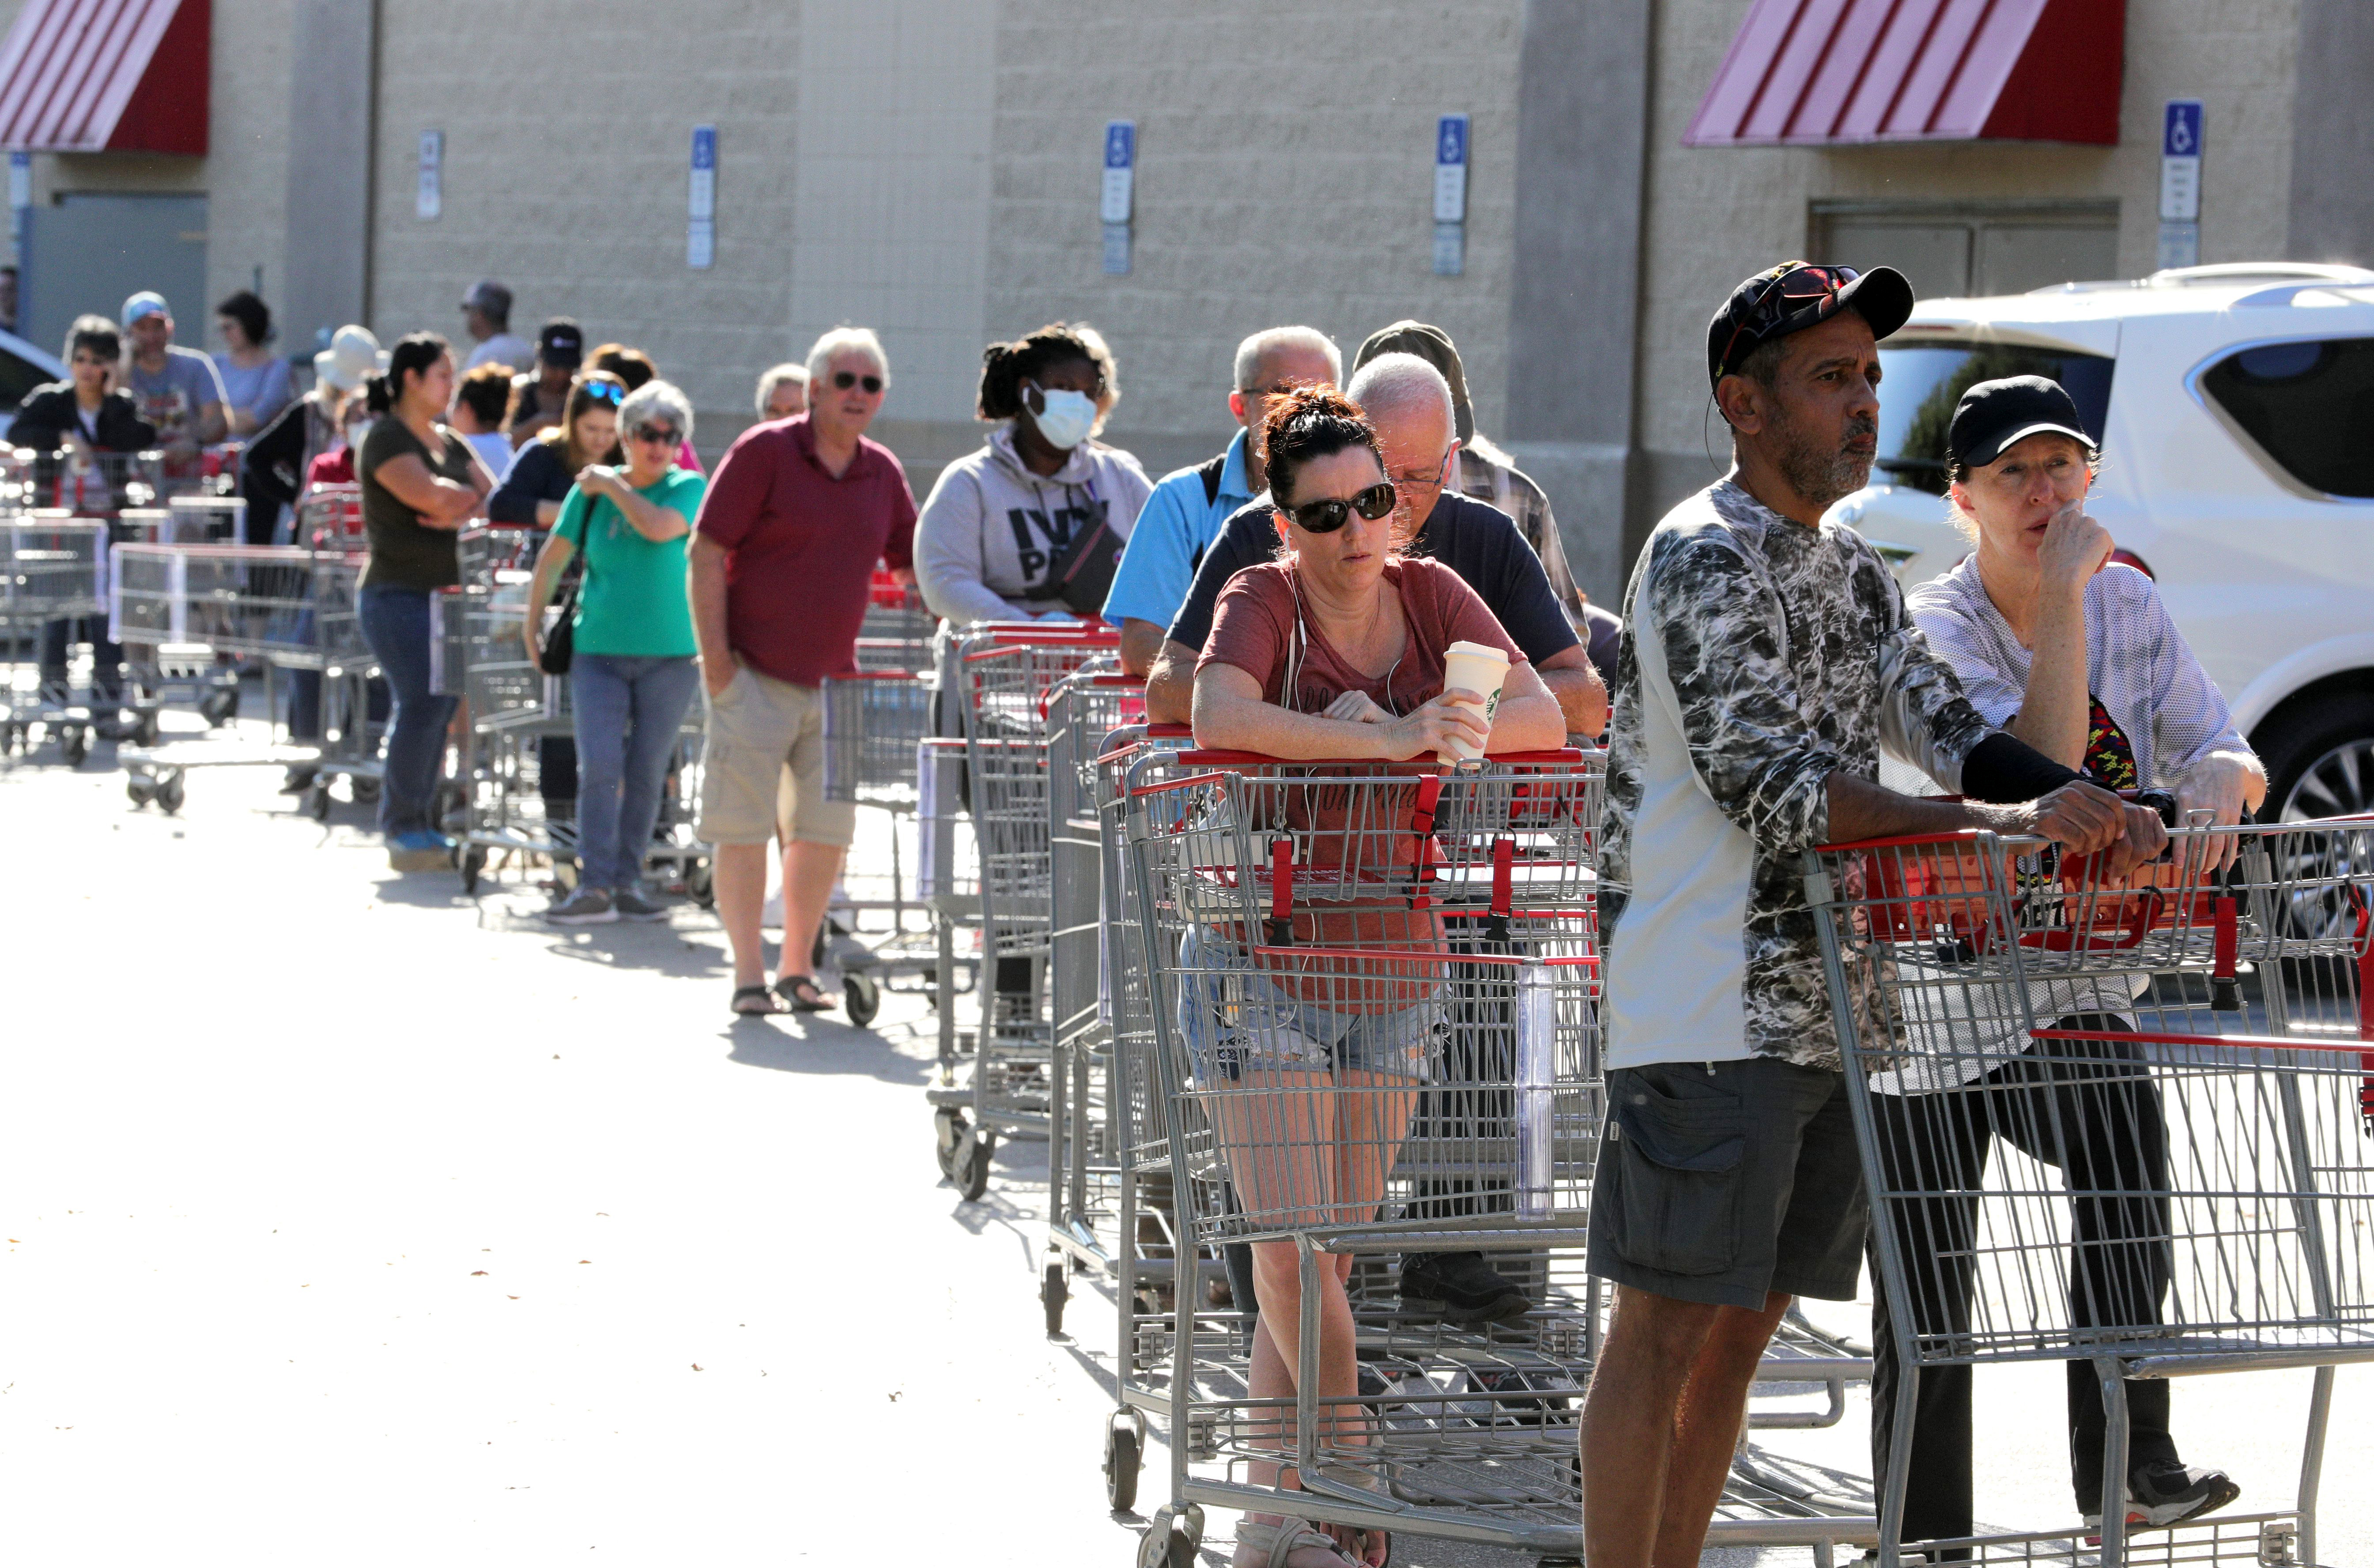 Hundreds of shoppers wait in line outside a Costco in Altamonte Springs, Fla., on March 19, 2020. The store was out of stock on hand sanitizer, toilet paper, bleach and other high-demand sanitation products as a result of the coronavirus response.